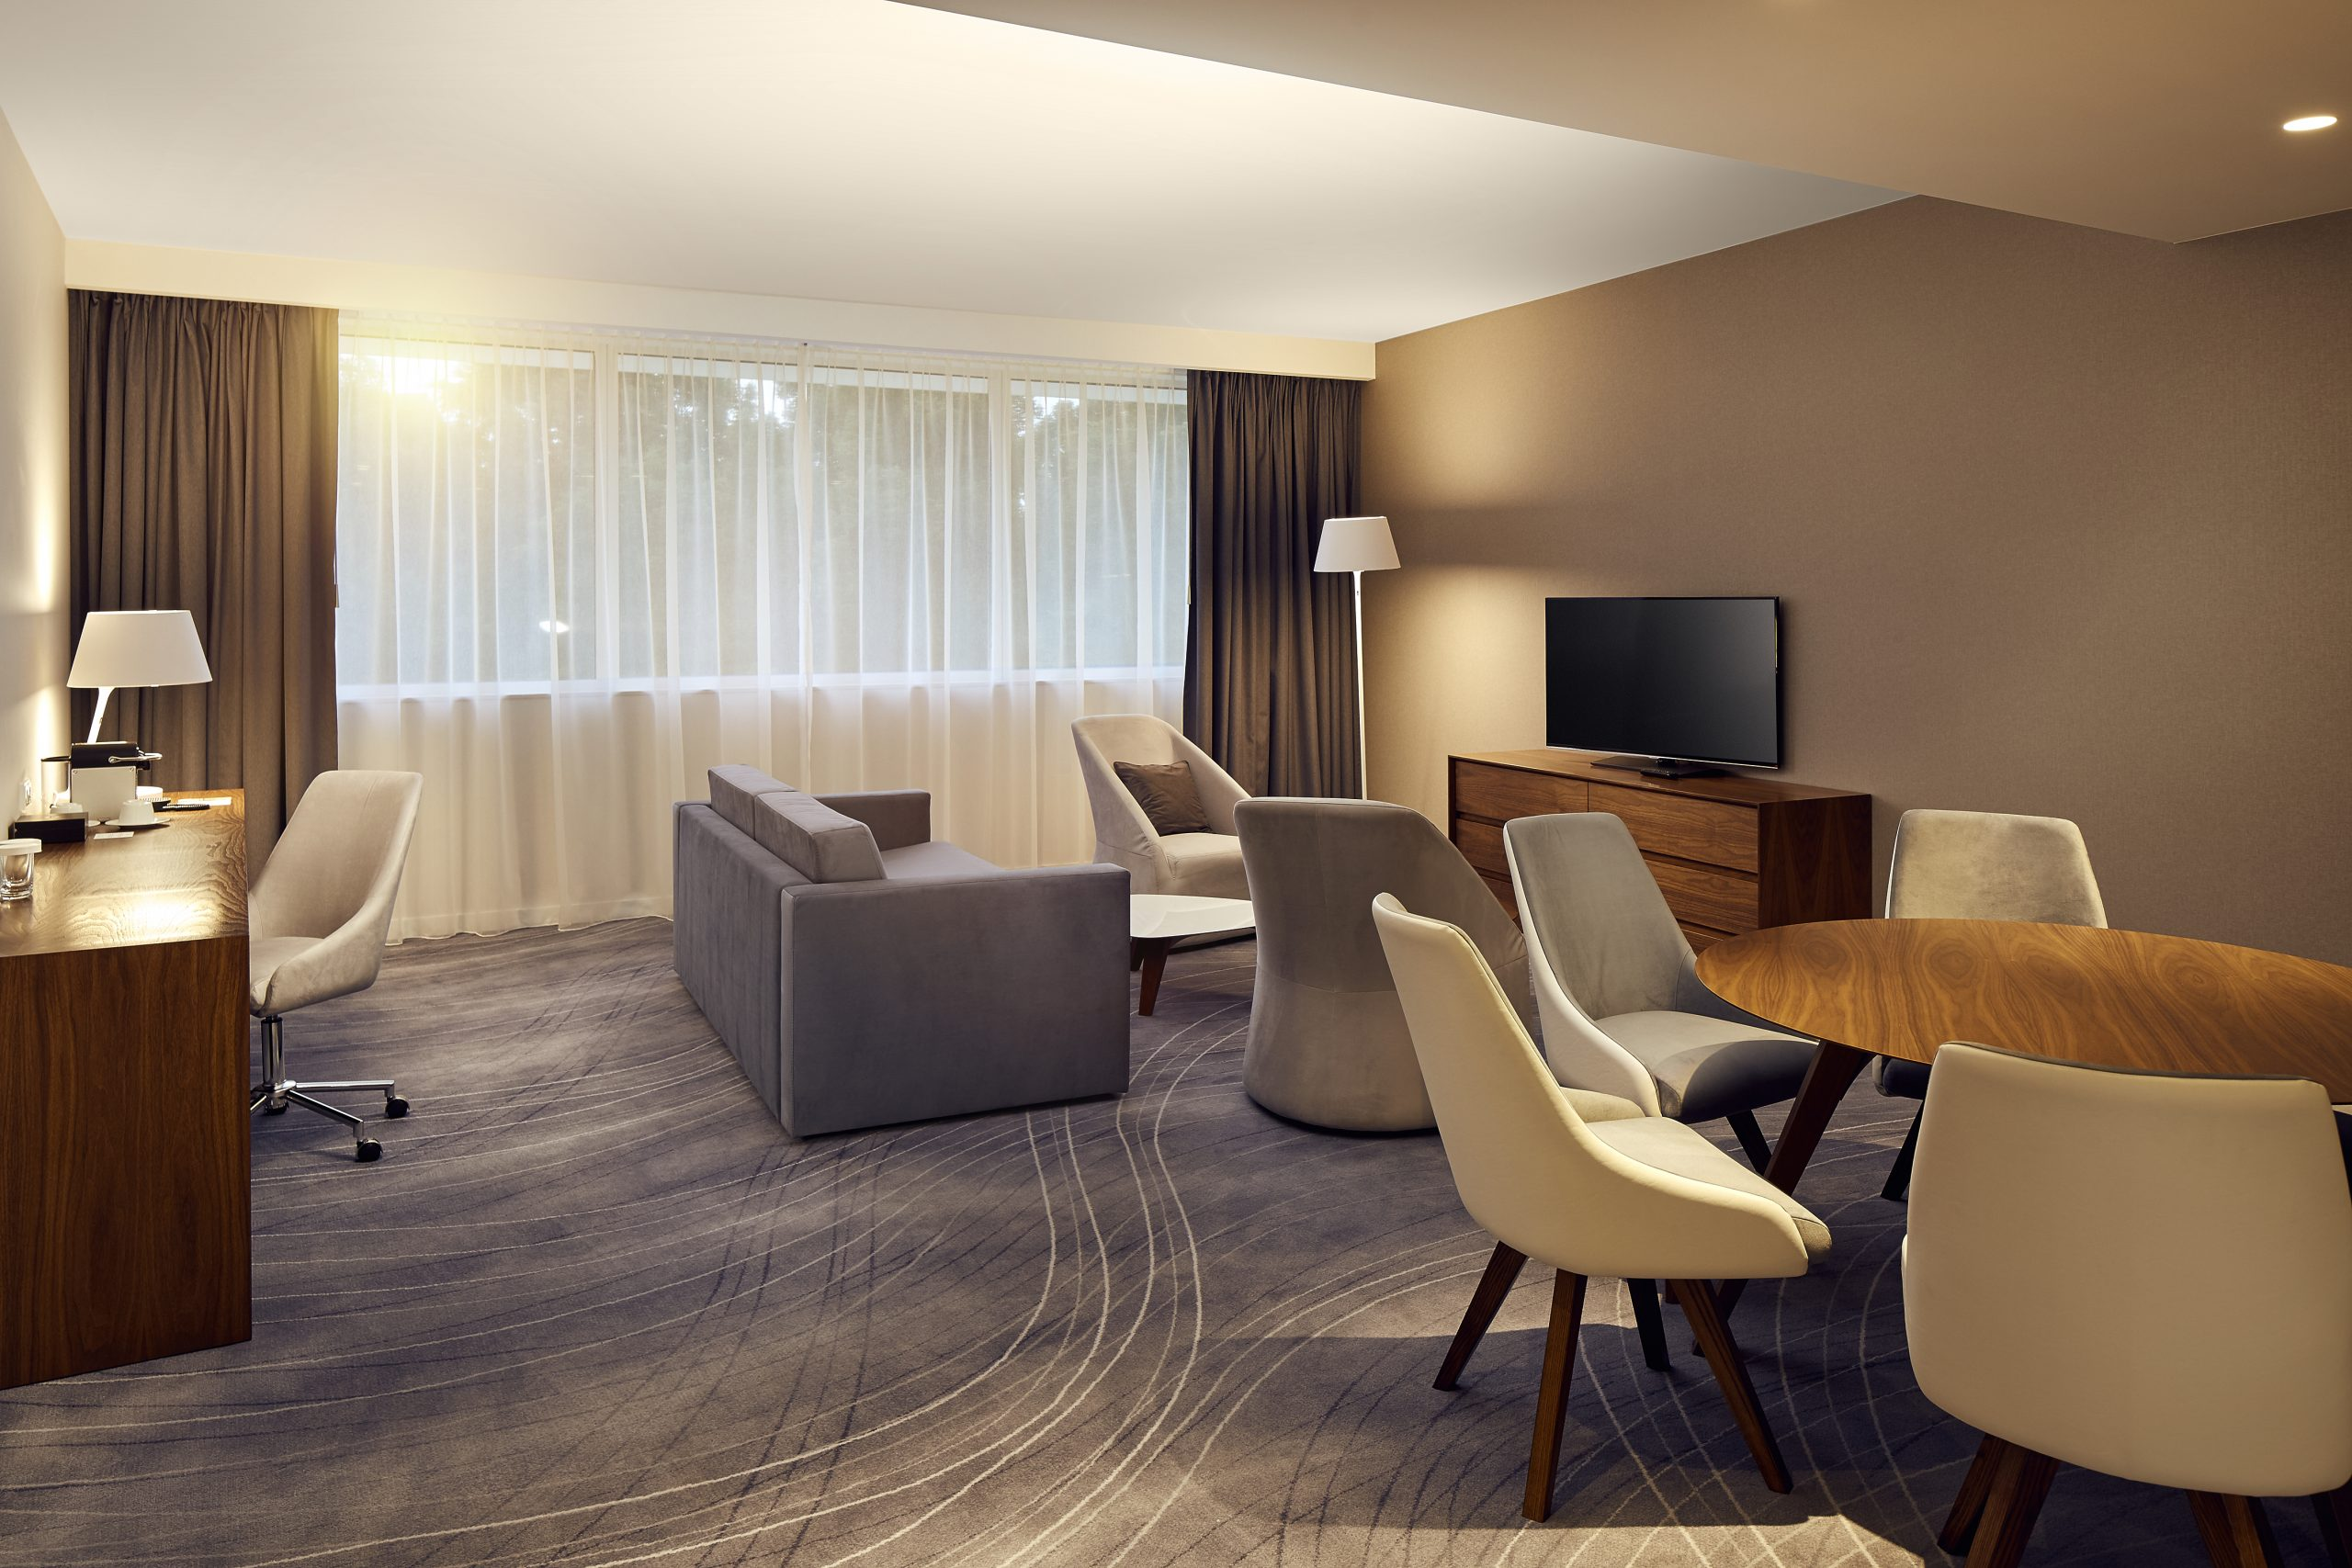 Double Tree Wroclaw - Rooms - OVO Suite Angle1 - 203